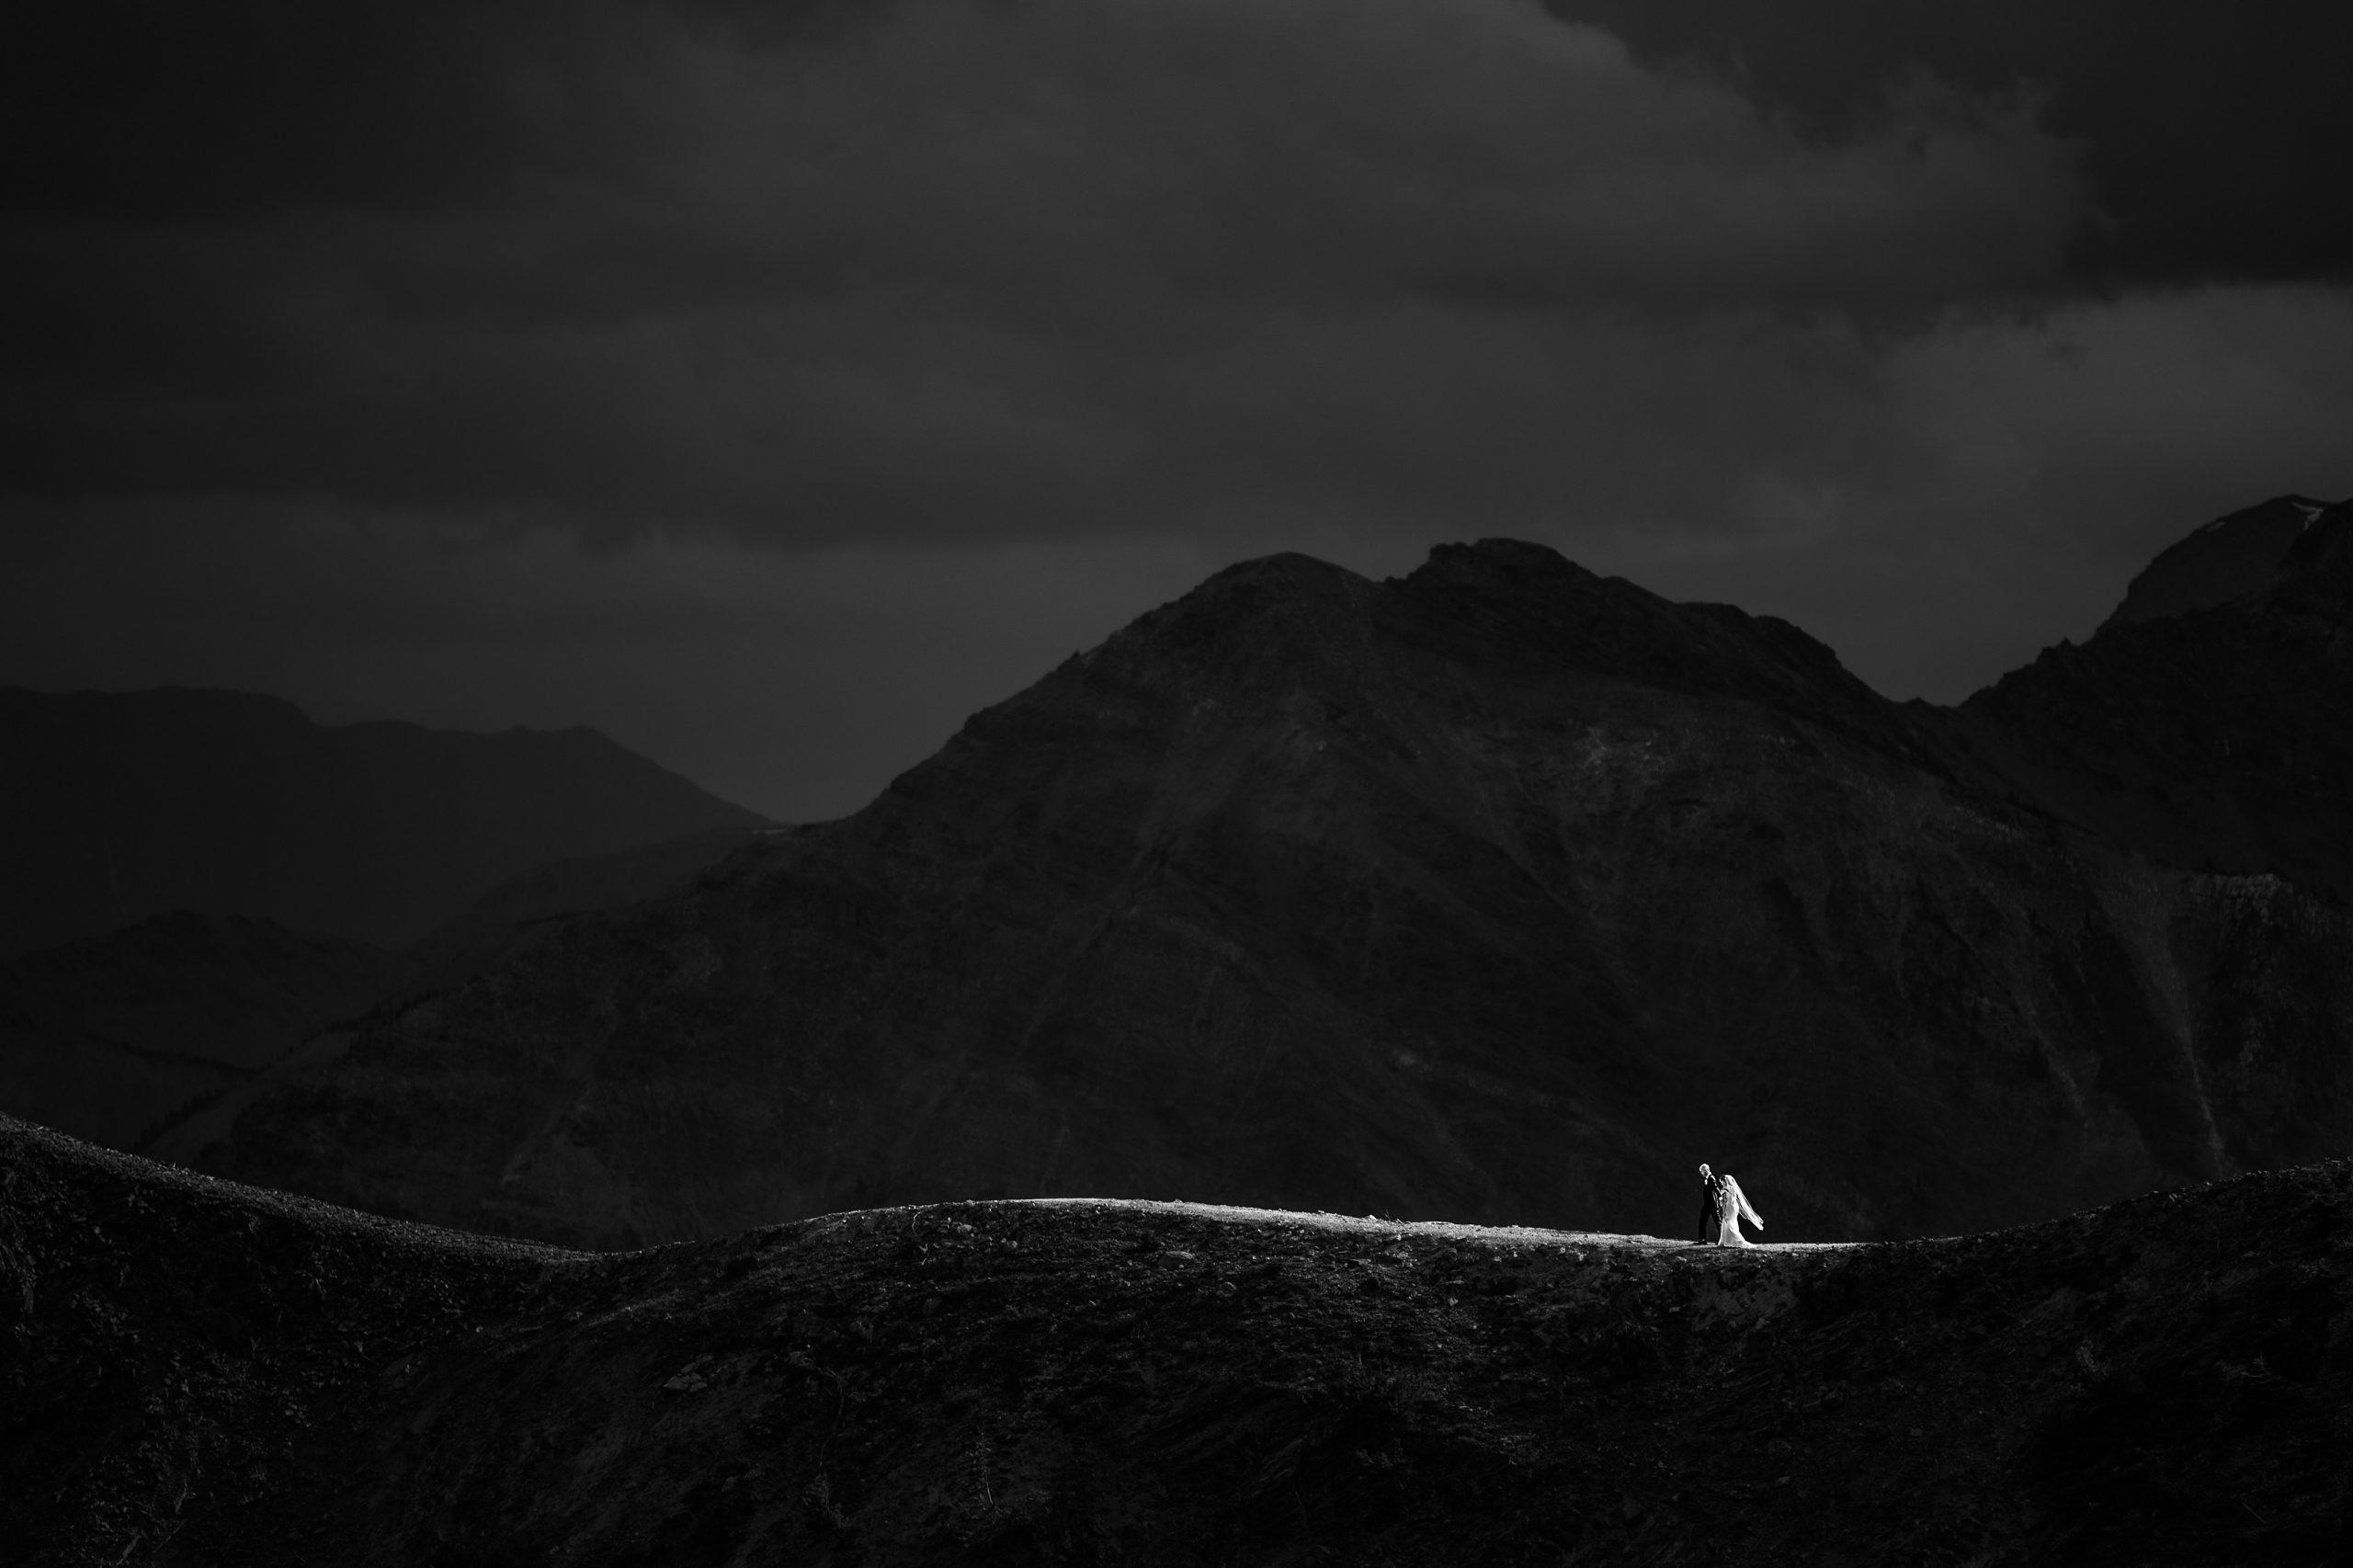 Couple walk along a mountain ridge with a cloudy backdrop